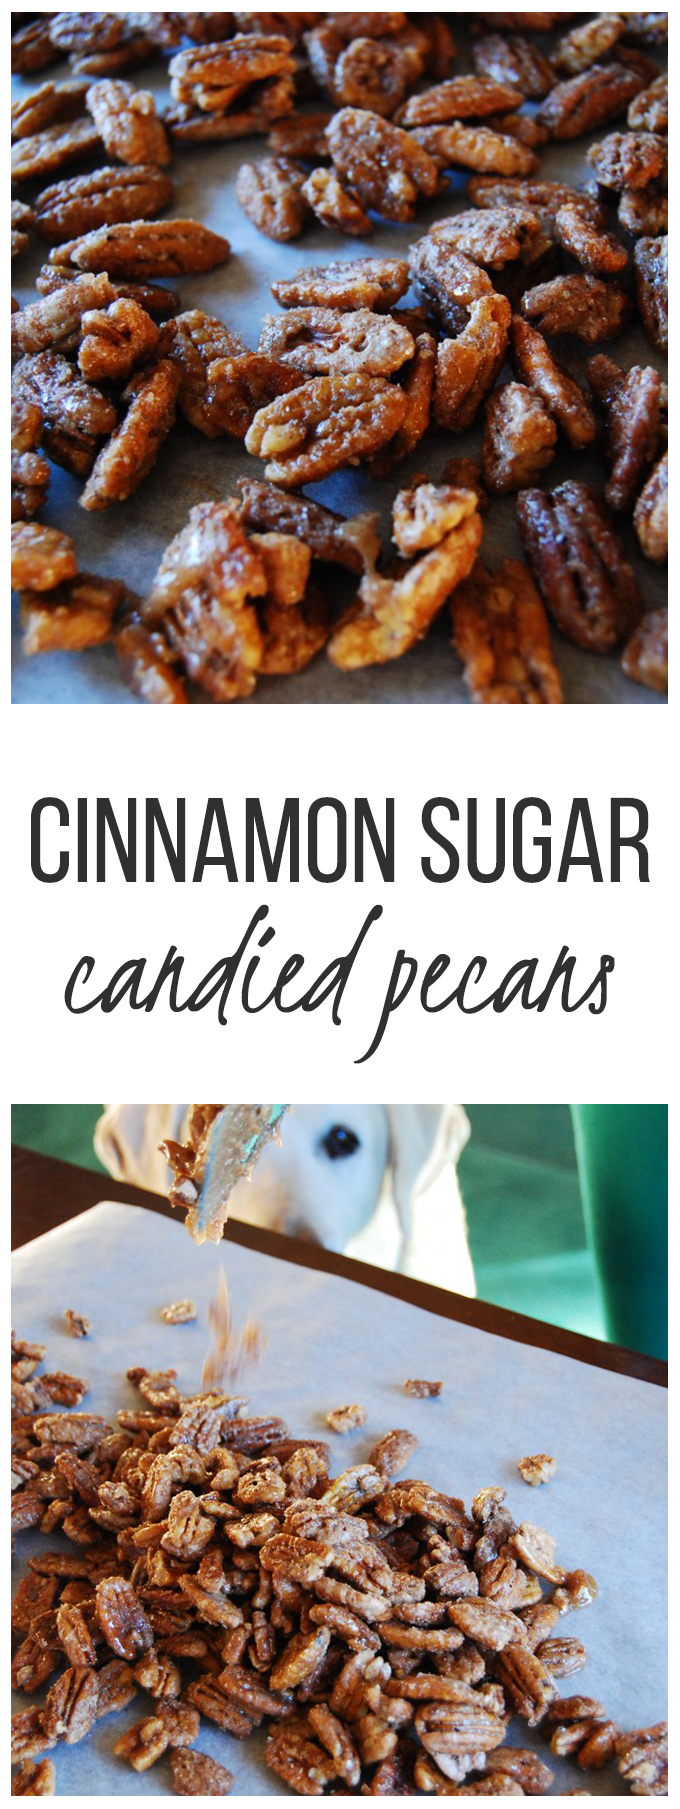 Cinnamon Sugar Candied Pecans!